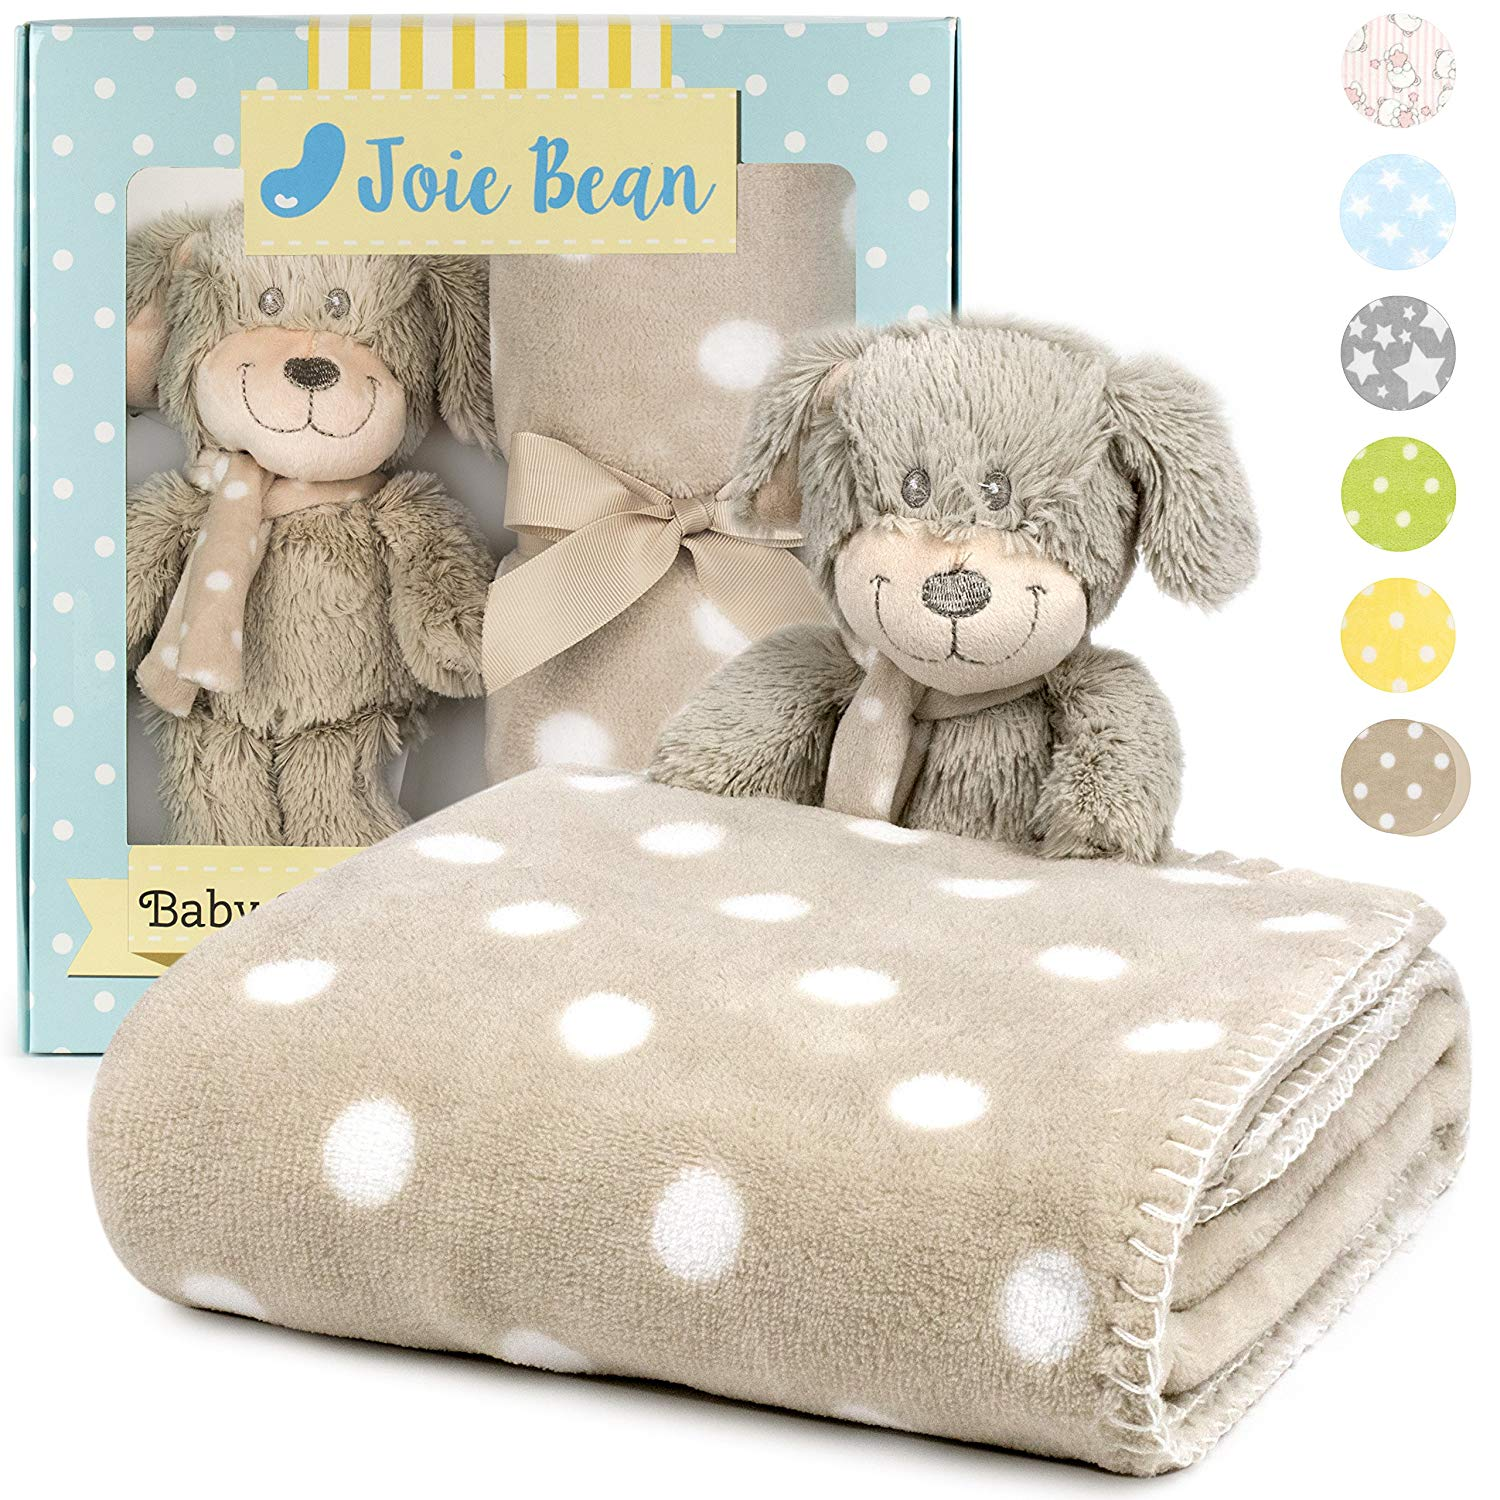 Premium Baby Blanket Set with Stuffed Animal Plush Toy | Soft Fleece Swaddle Blanket, Security Throw for Baby, Newborn, and Toddler | Nursery Bedding and Baby Shower Gift (Brown - Dog)